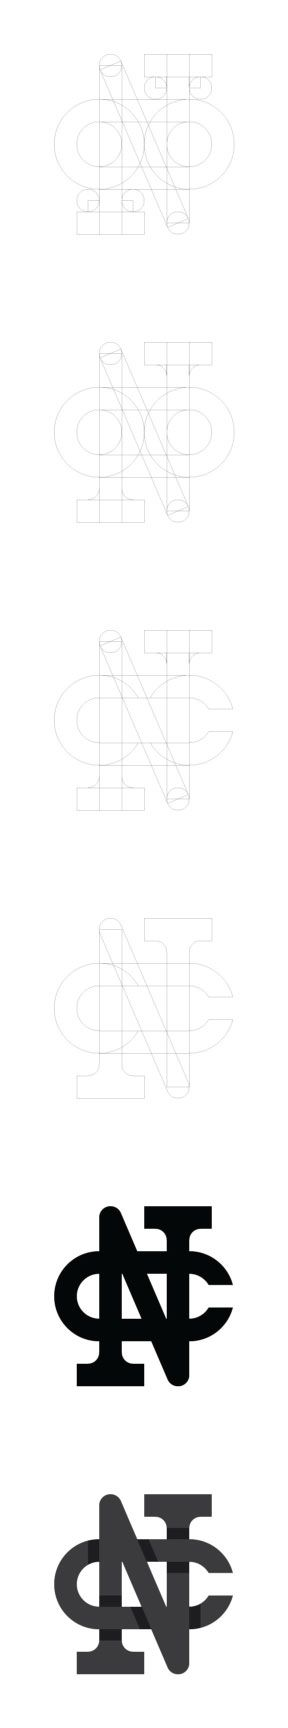 My initials in a monogram - image 1 - student project